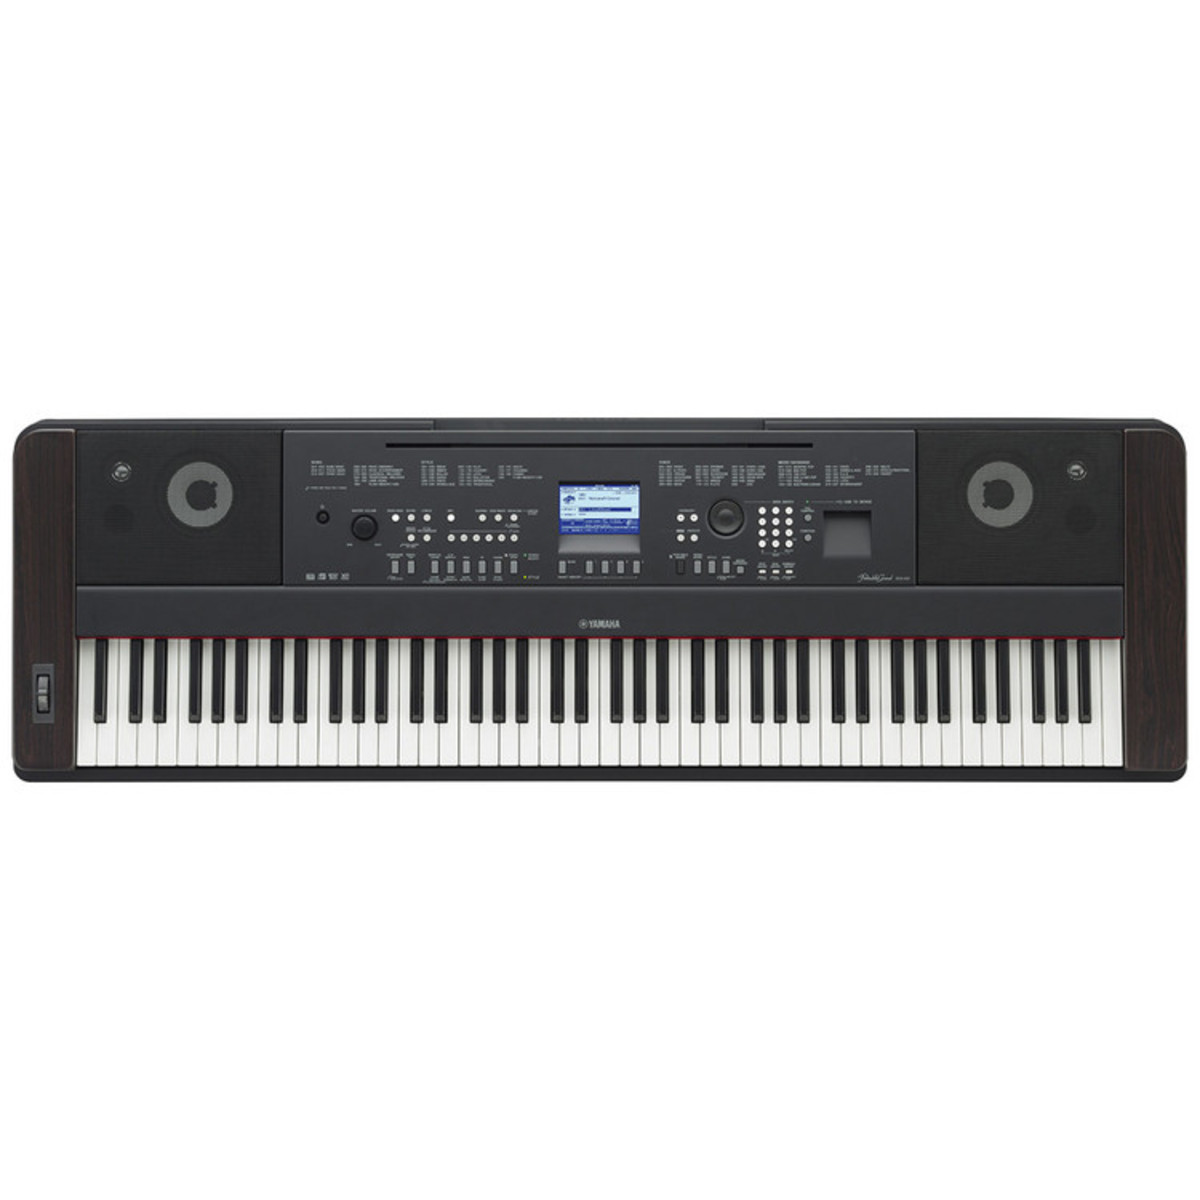 Disc yamaha portable grand dgx650 digit lne piano ierna for Yamaha credit application